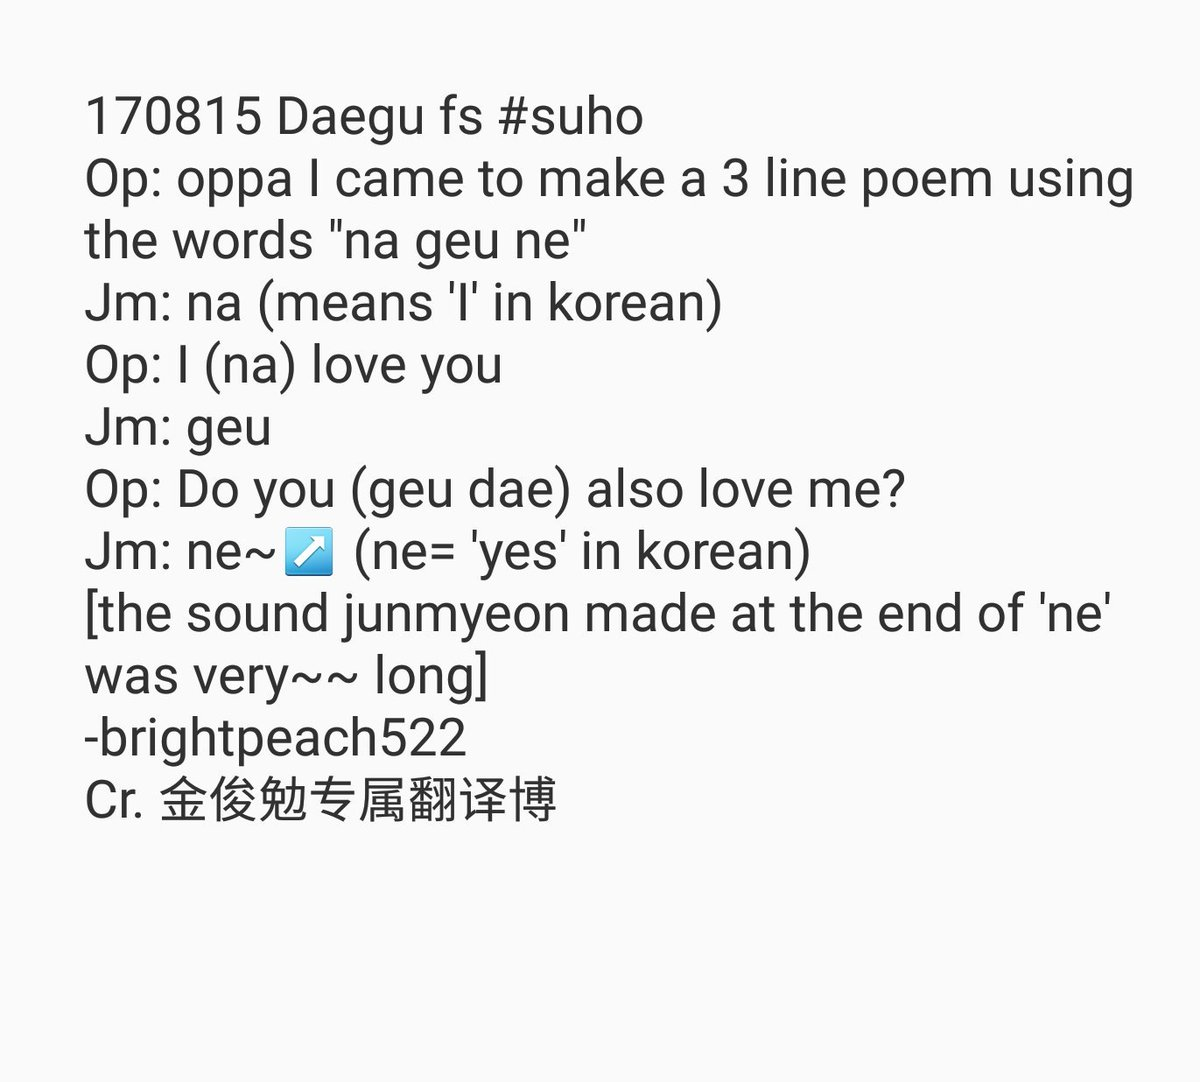 170815 Daegu fs #suho &#39;oppa I came to make a 3 line poem using the words &quot;na geu ne&quot; &#39;  junmyeon fell for this  <br>http://pic.twitter.com/dB2Nfz7Lh7